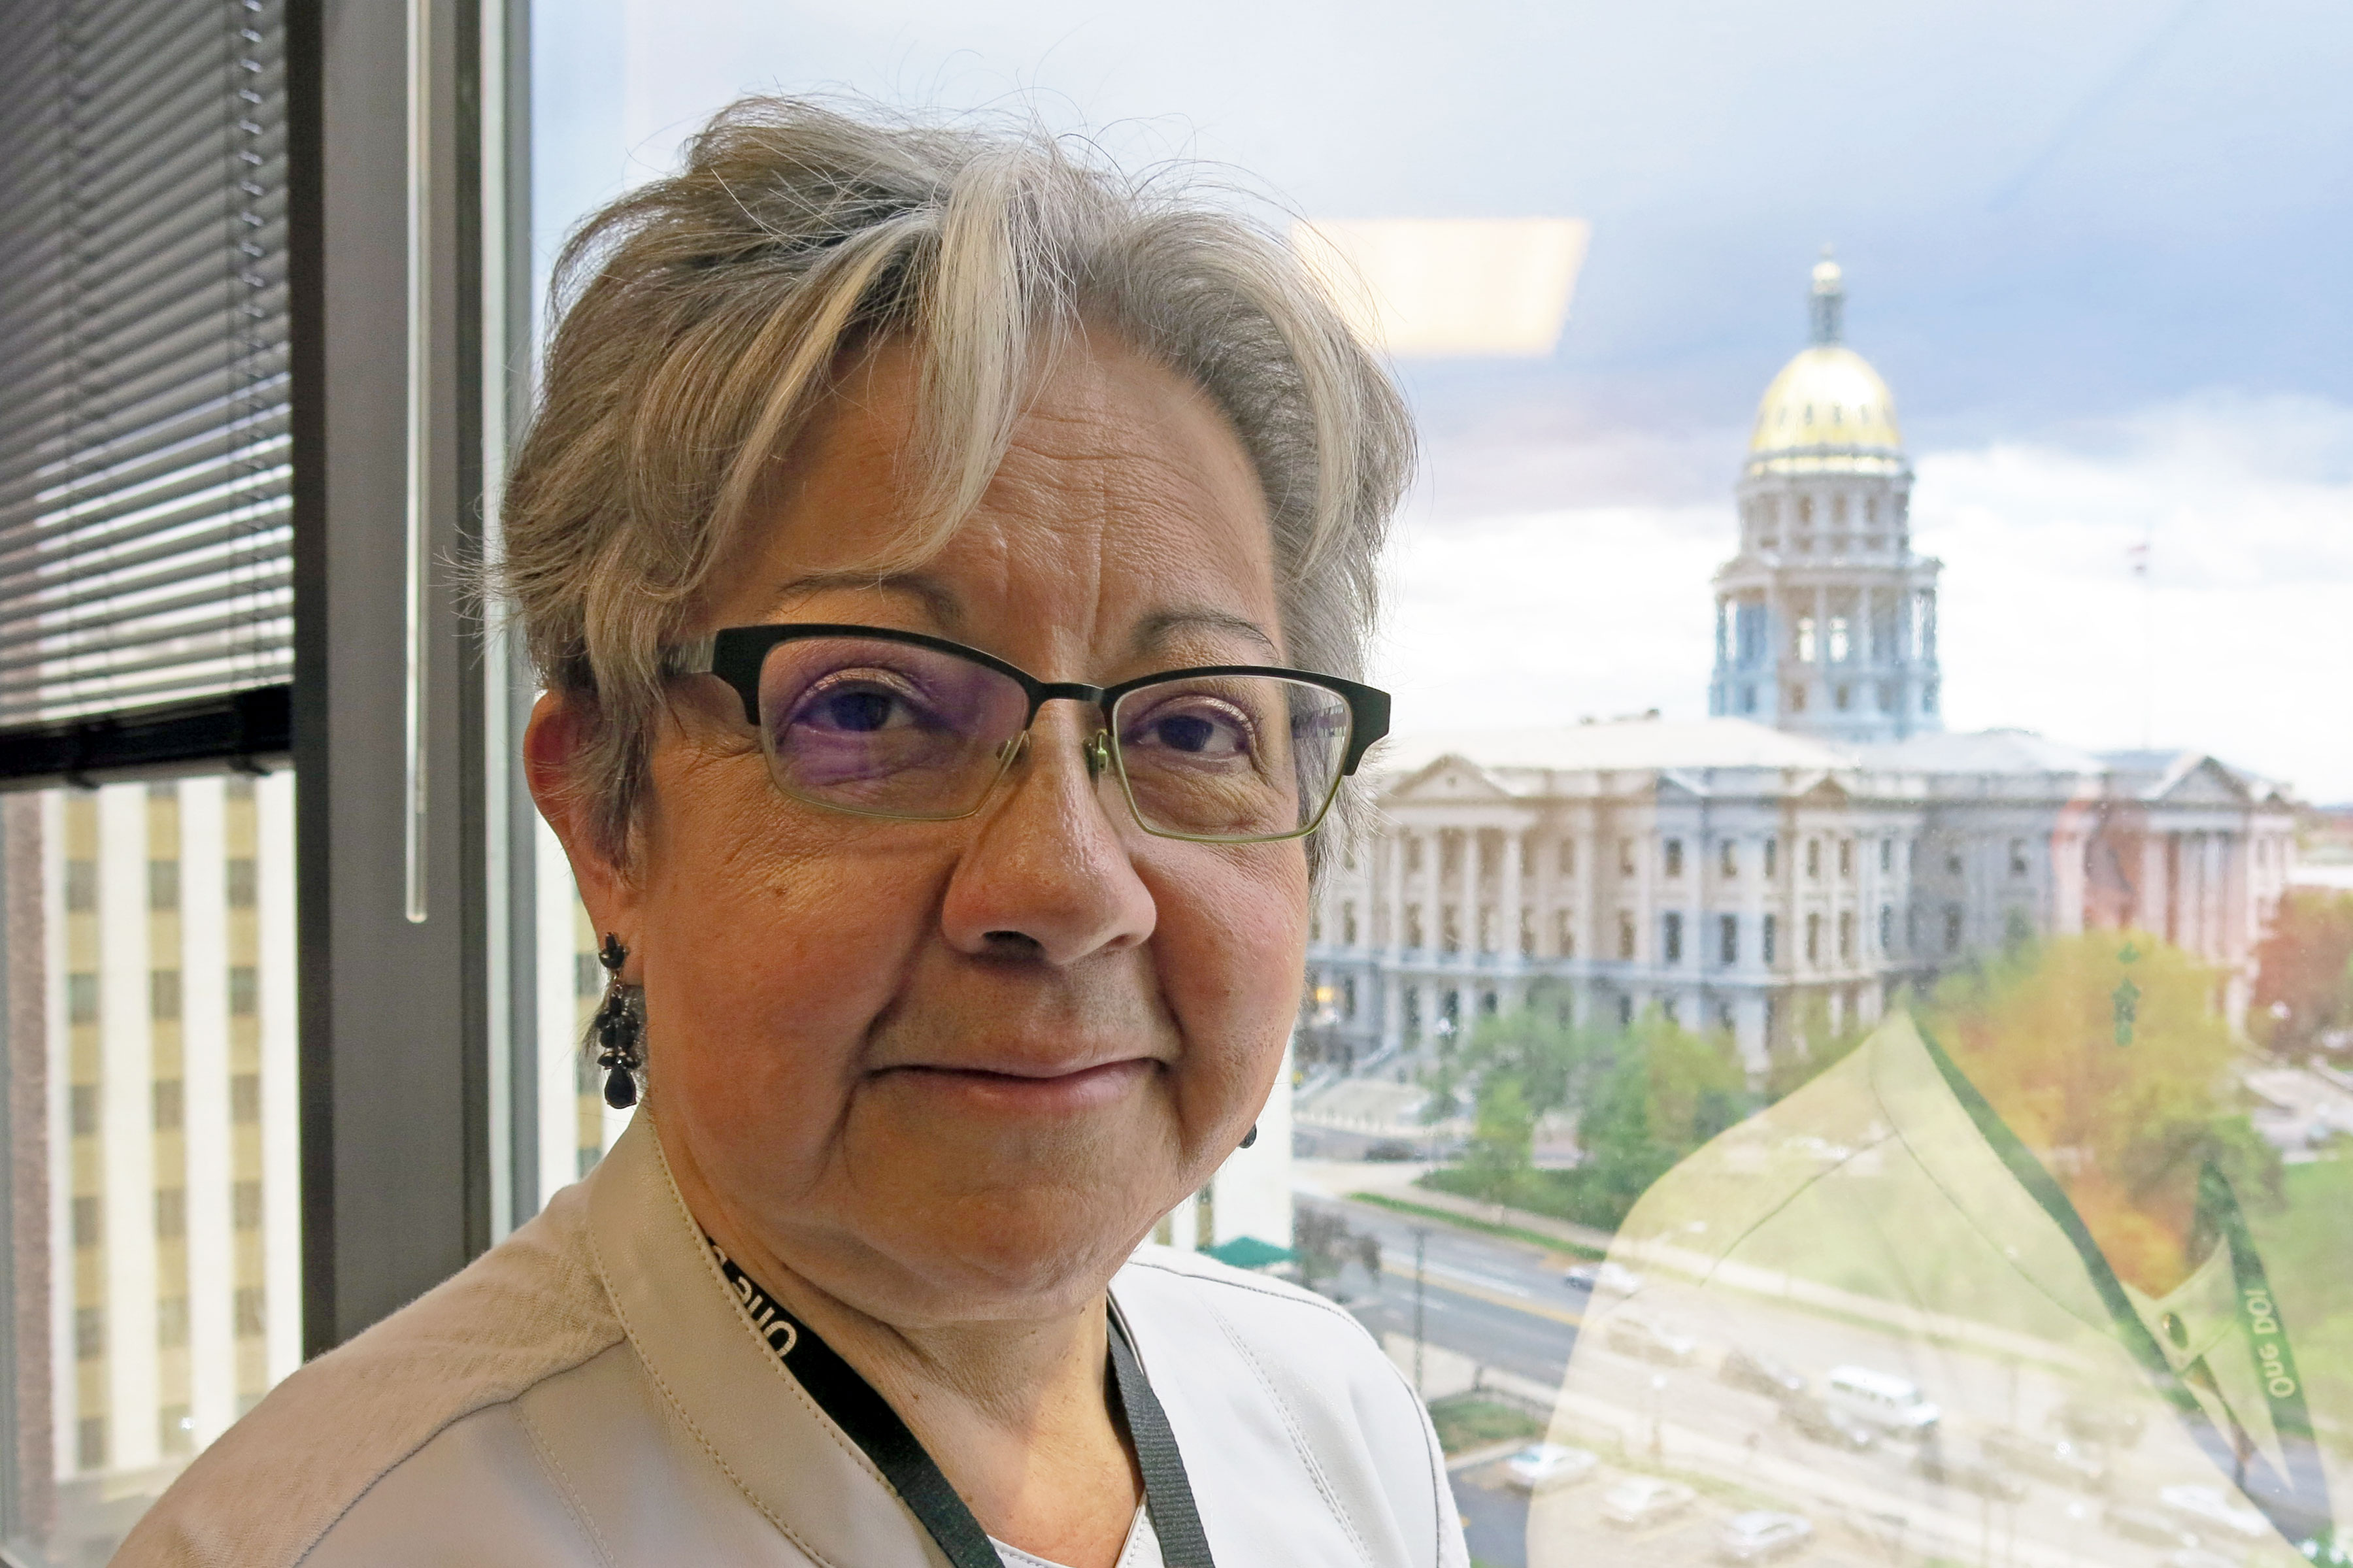 <p>Marguerite Salazarworks in the state's Department of Regulatory Agencies as the insurance commissioner.</p>